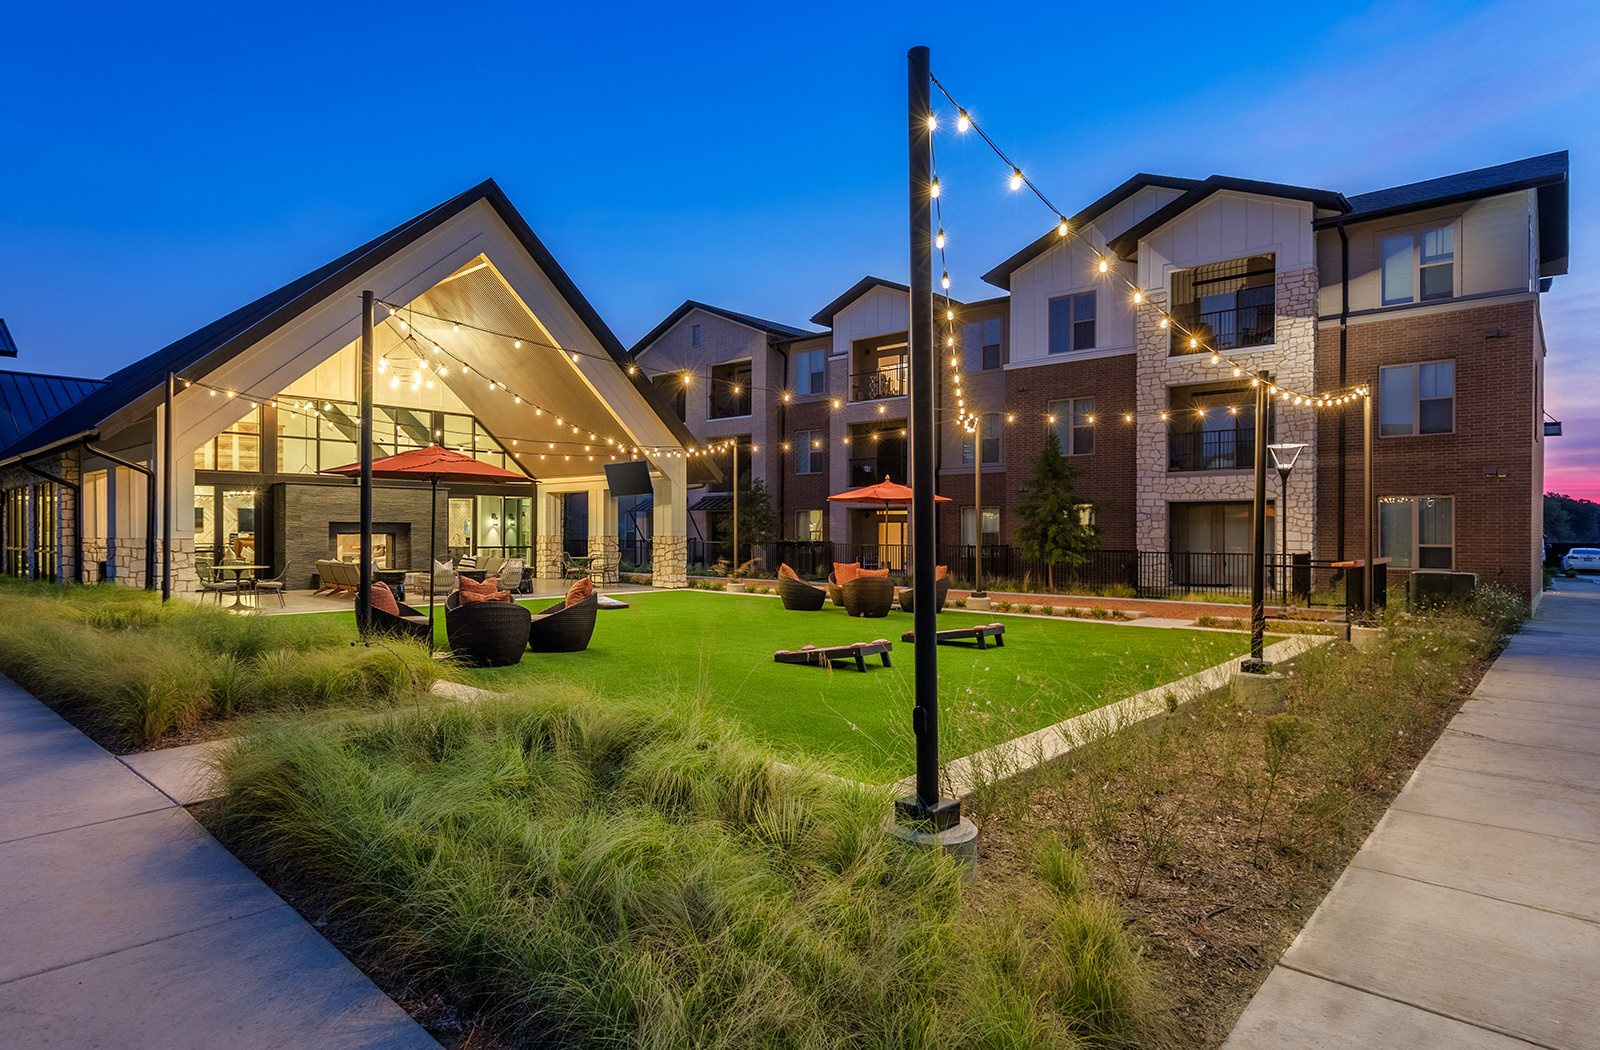 3sixty flats apartments in grand prairie tx - 2 bedroom apartments in grand prairie tx ...